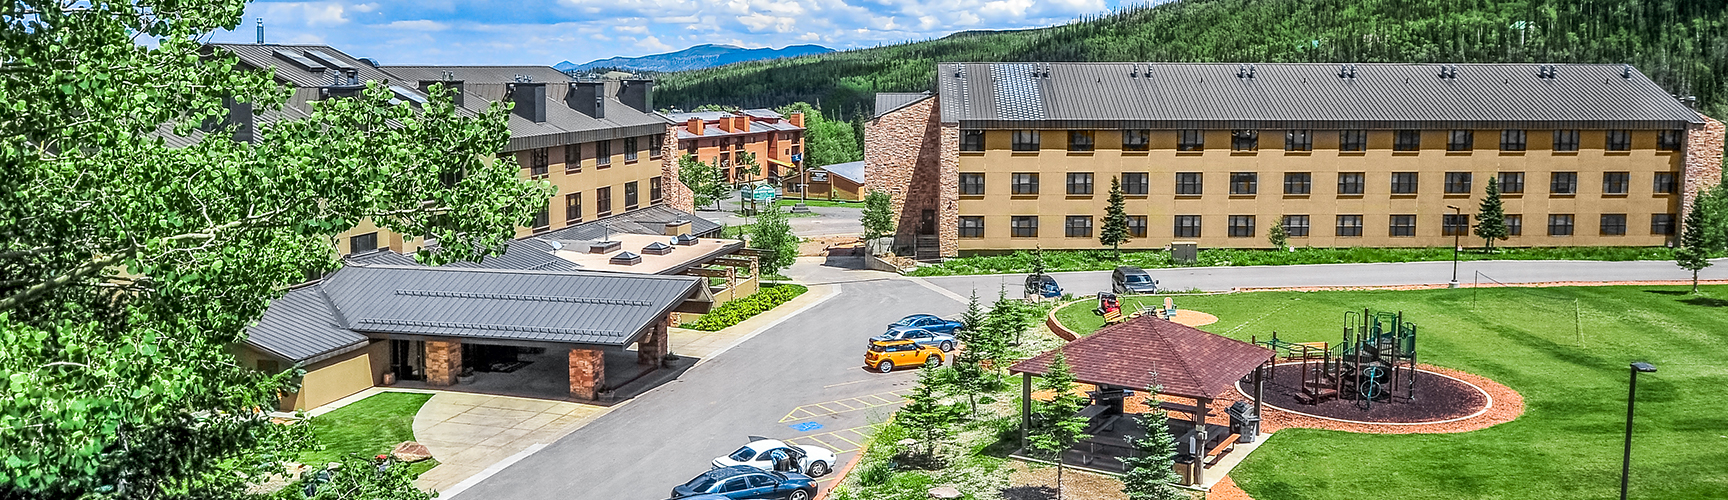 Exterior view of Cedar Breaks Lodge & Spa in Brian Head, Utah